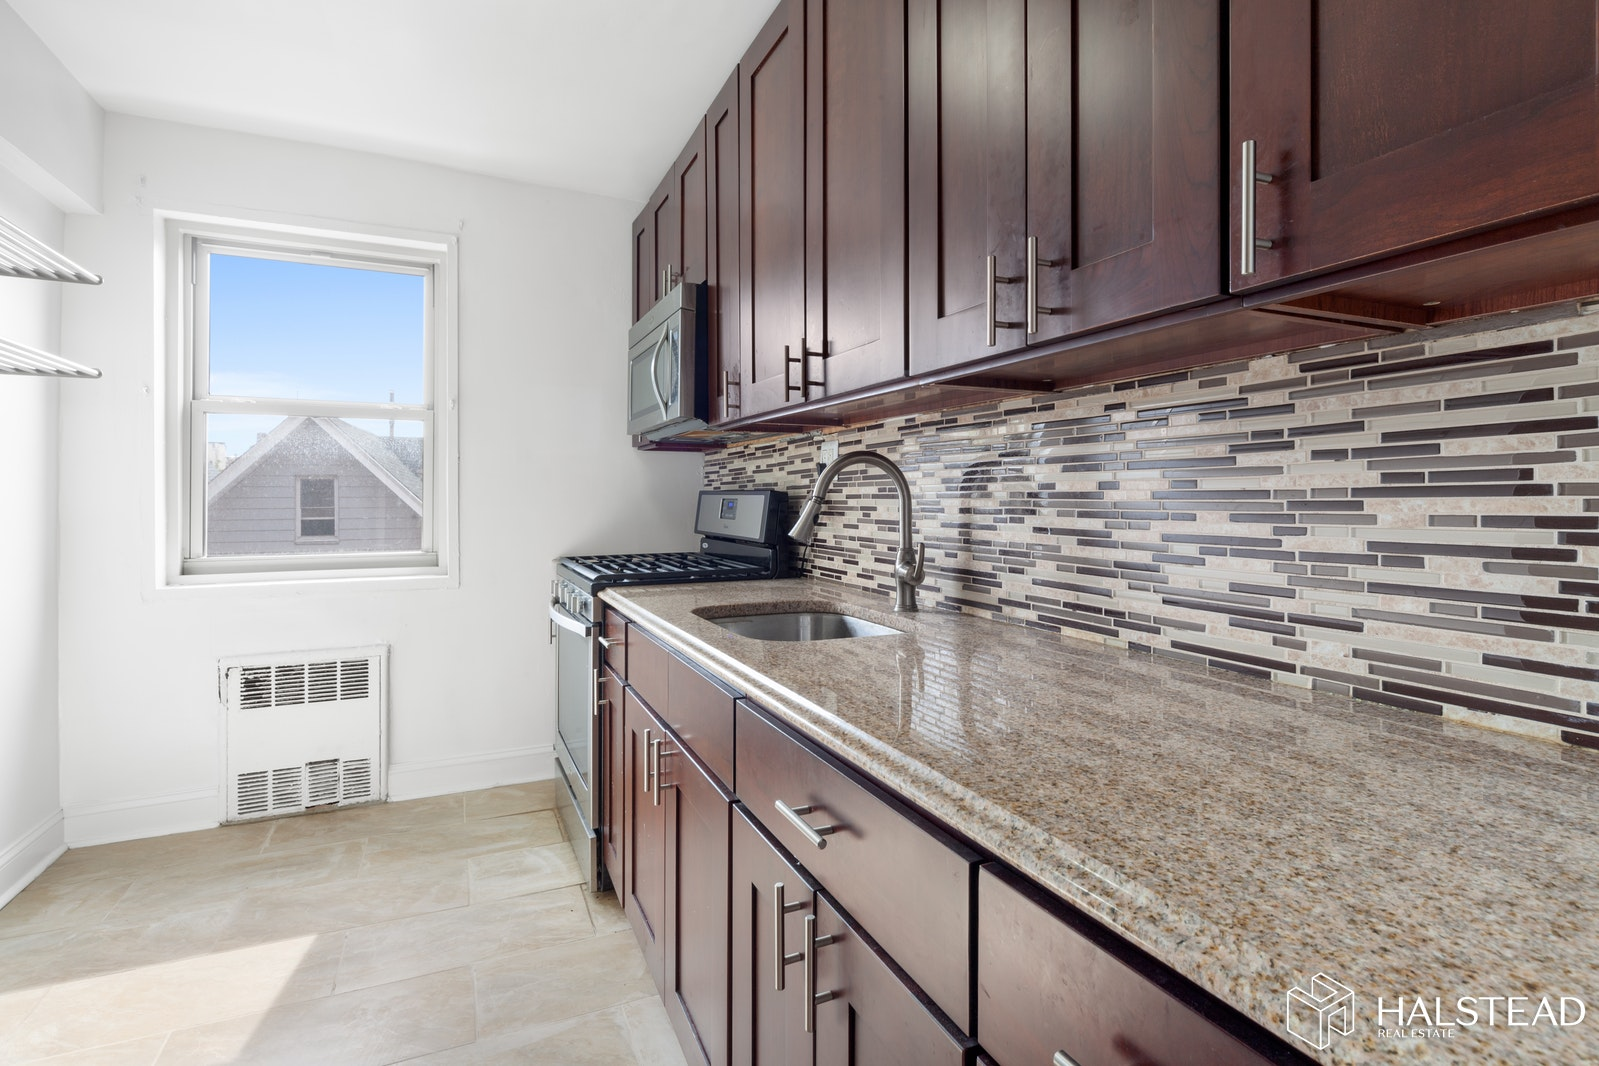 1010 Sherman Avenue 3d, Concourse Village, New York, 10456, $175,000, Property For Sale, Halstead Real Estate, Photo 6